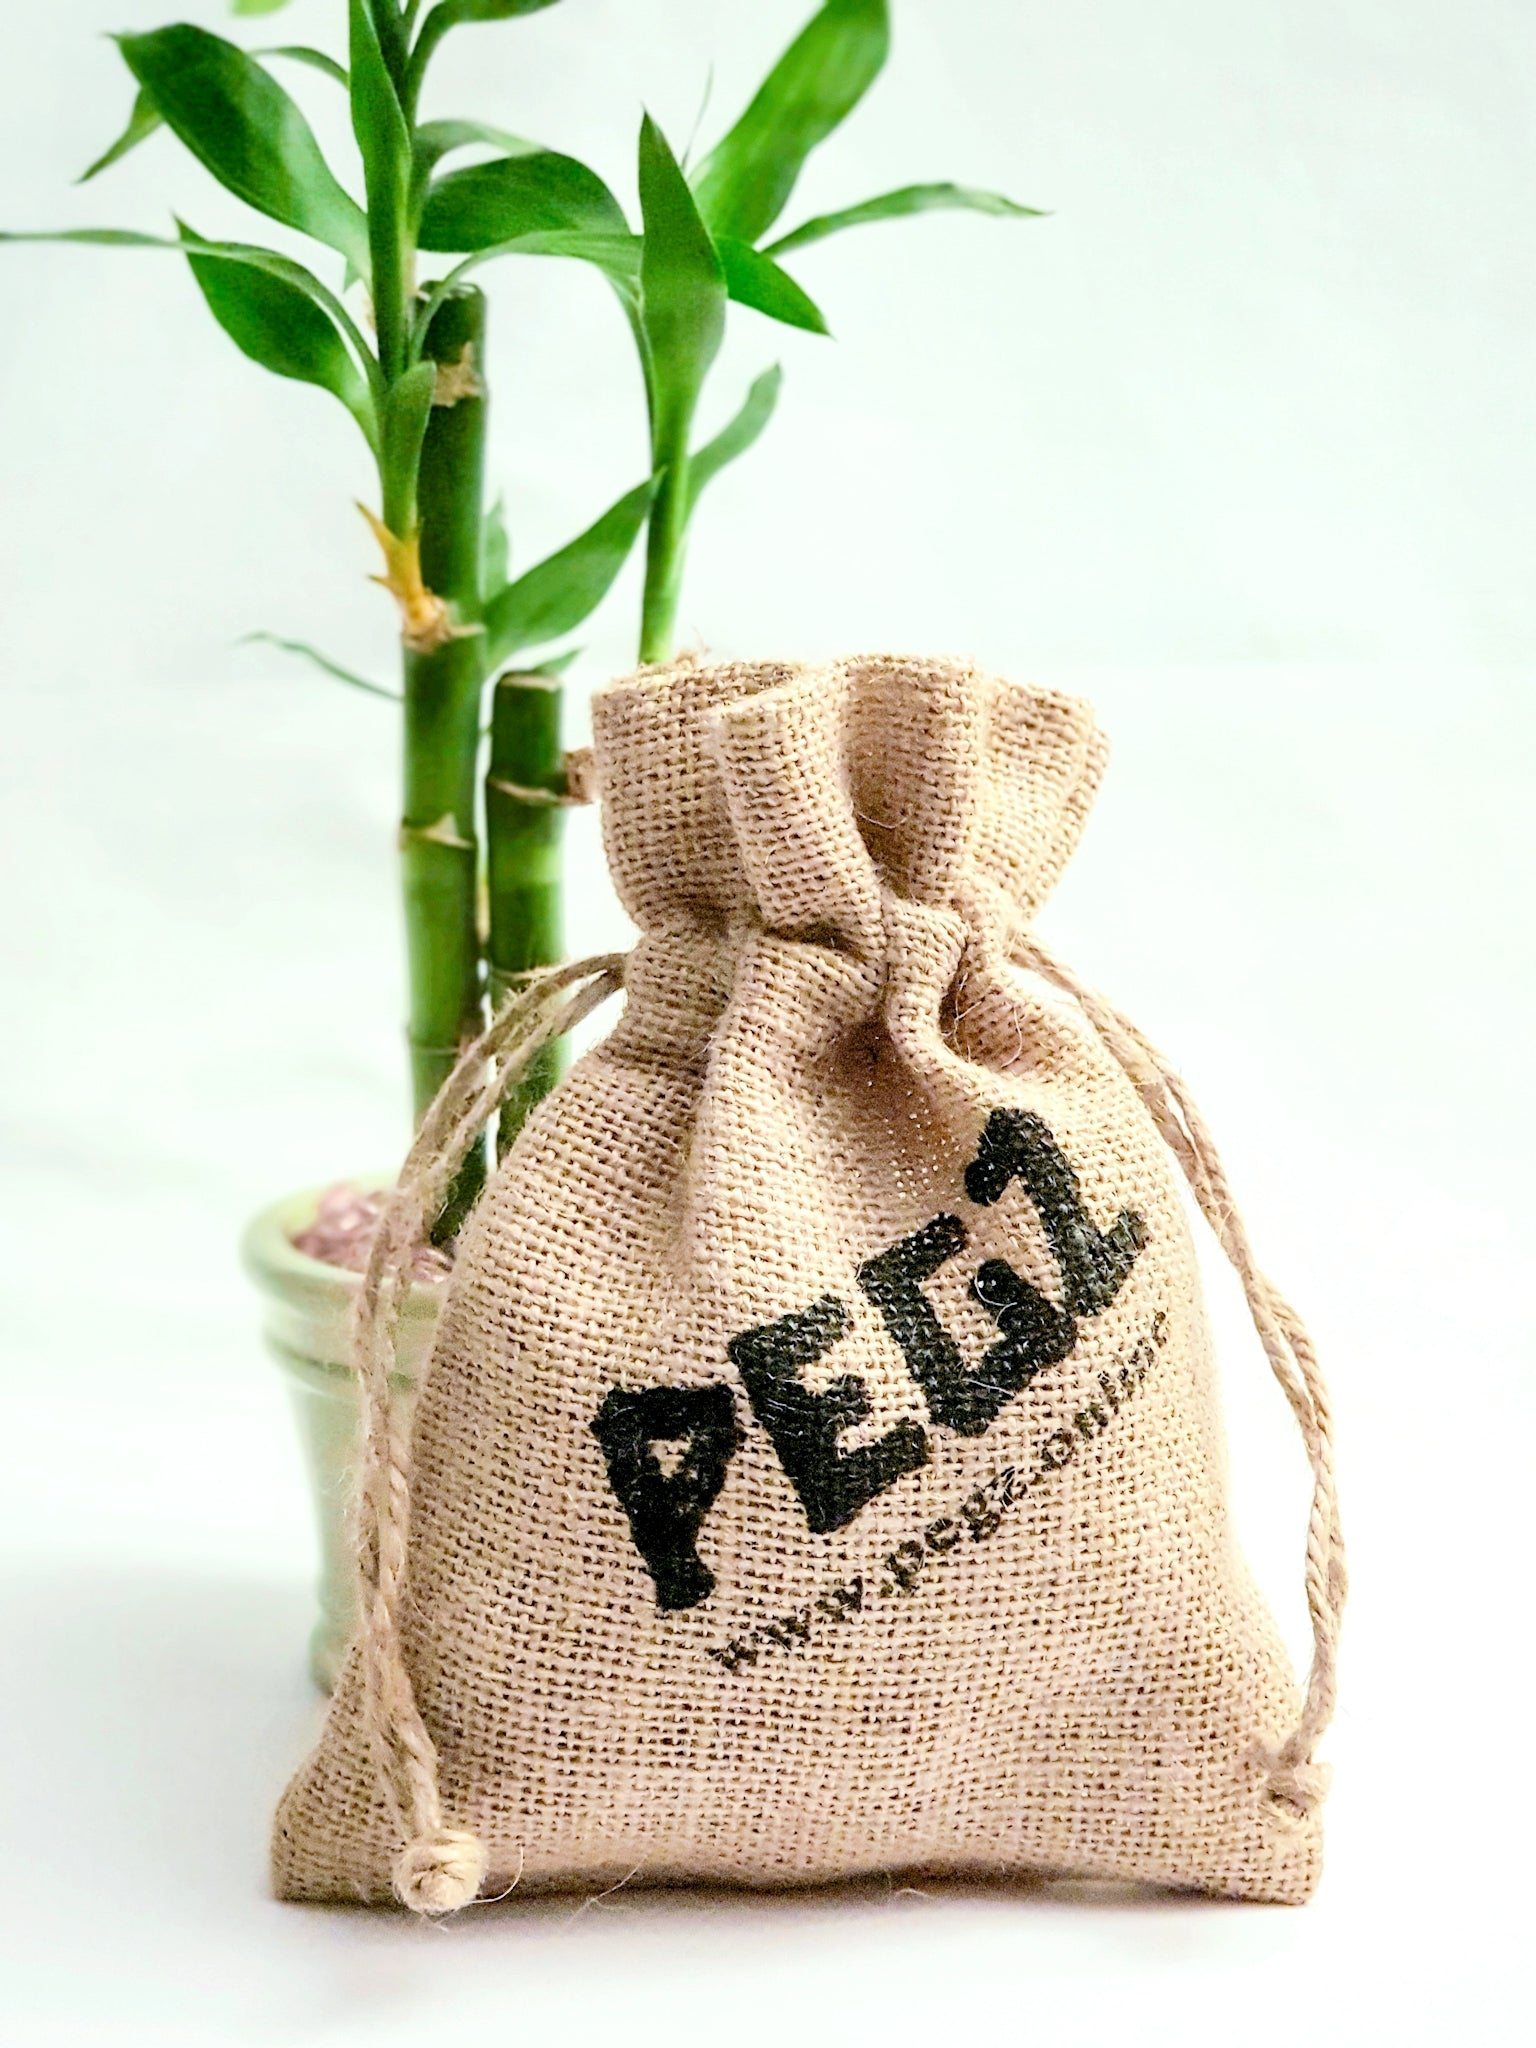 PEGZ jute drawstring bag next to a lucky bamboo potted plant